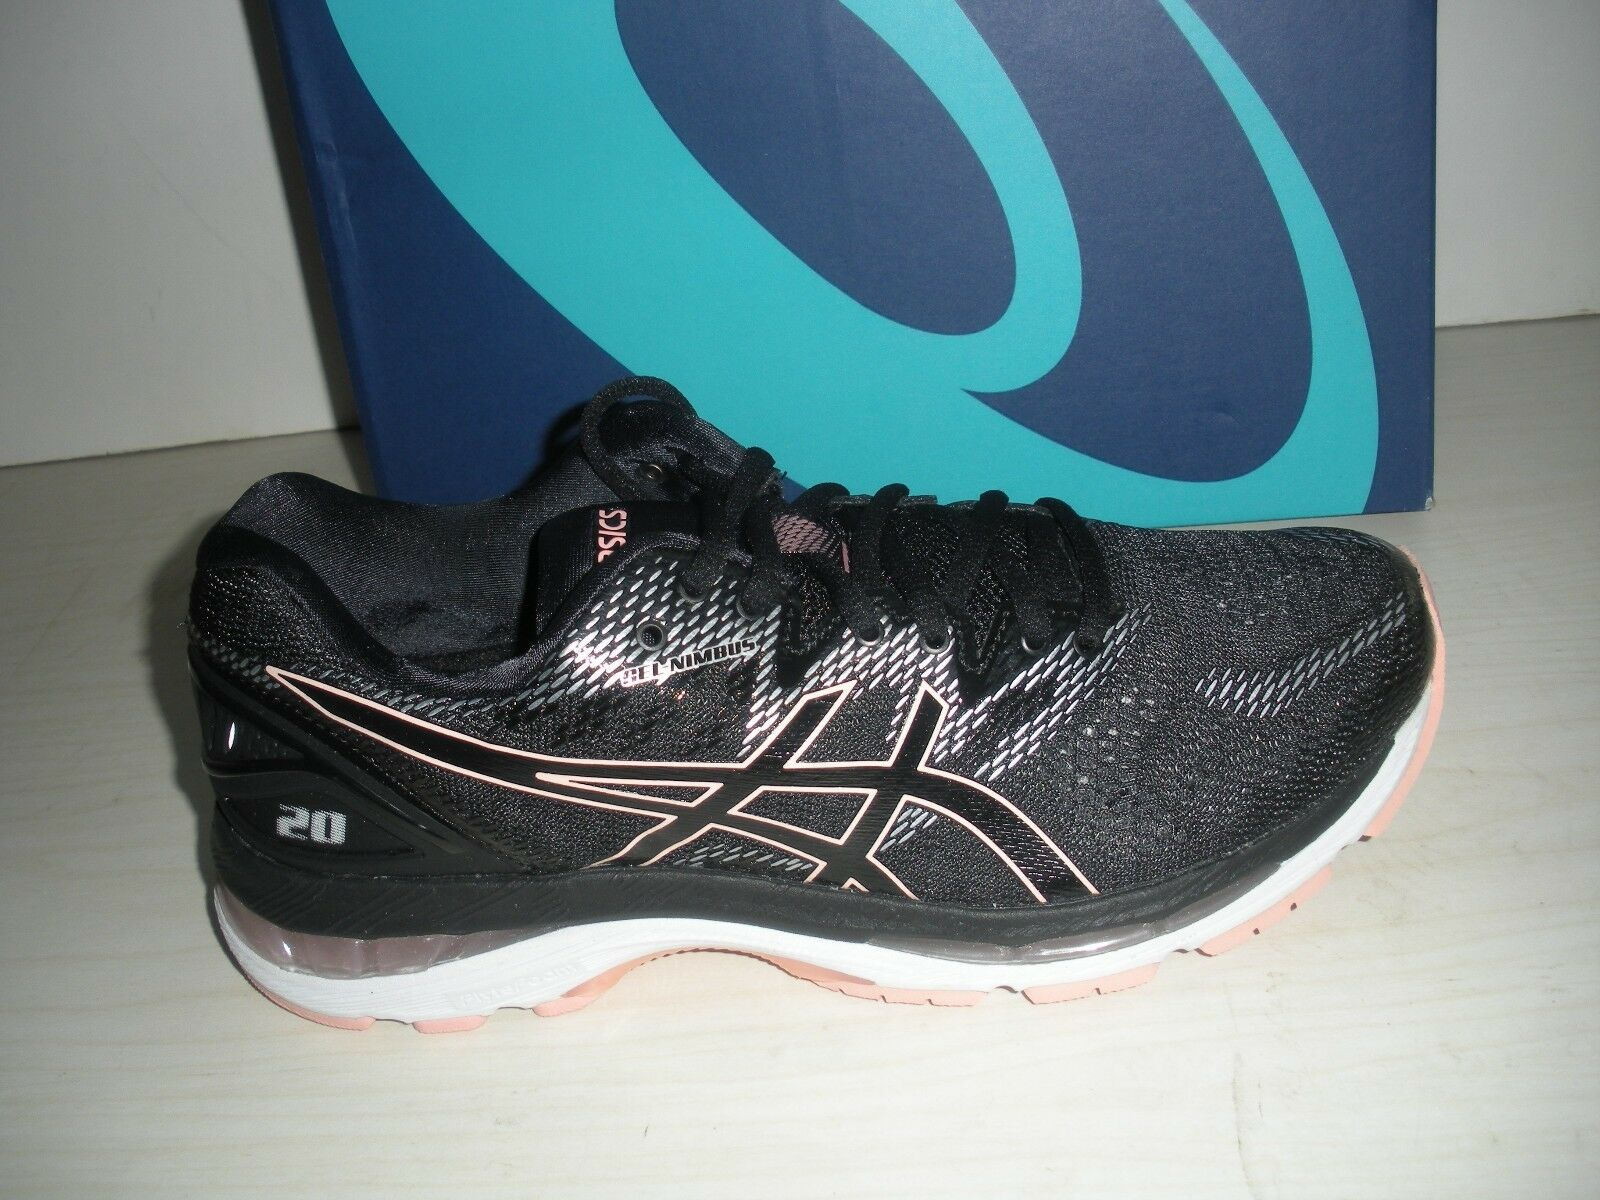 ASICS WOMENS GEL-NIMBUS 20 RUNNING SHOES-SNEAKERS-T850N-001- BLACK/ FROSTED ROSE Wild casual shoes